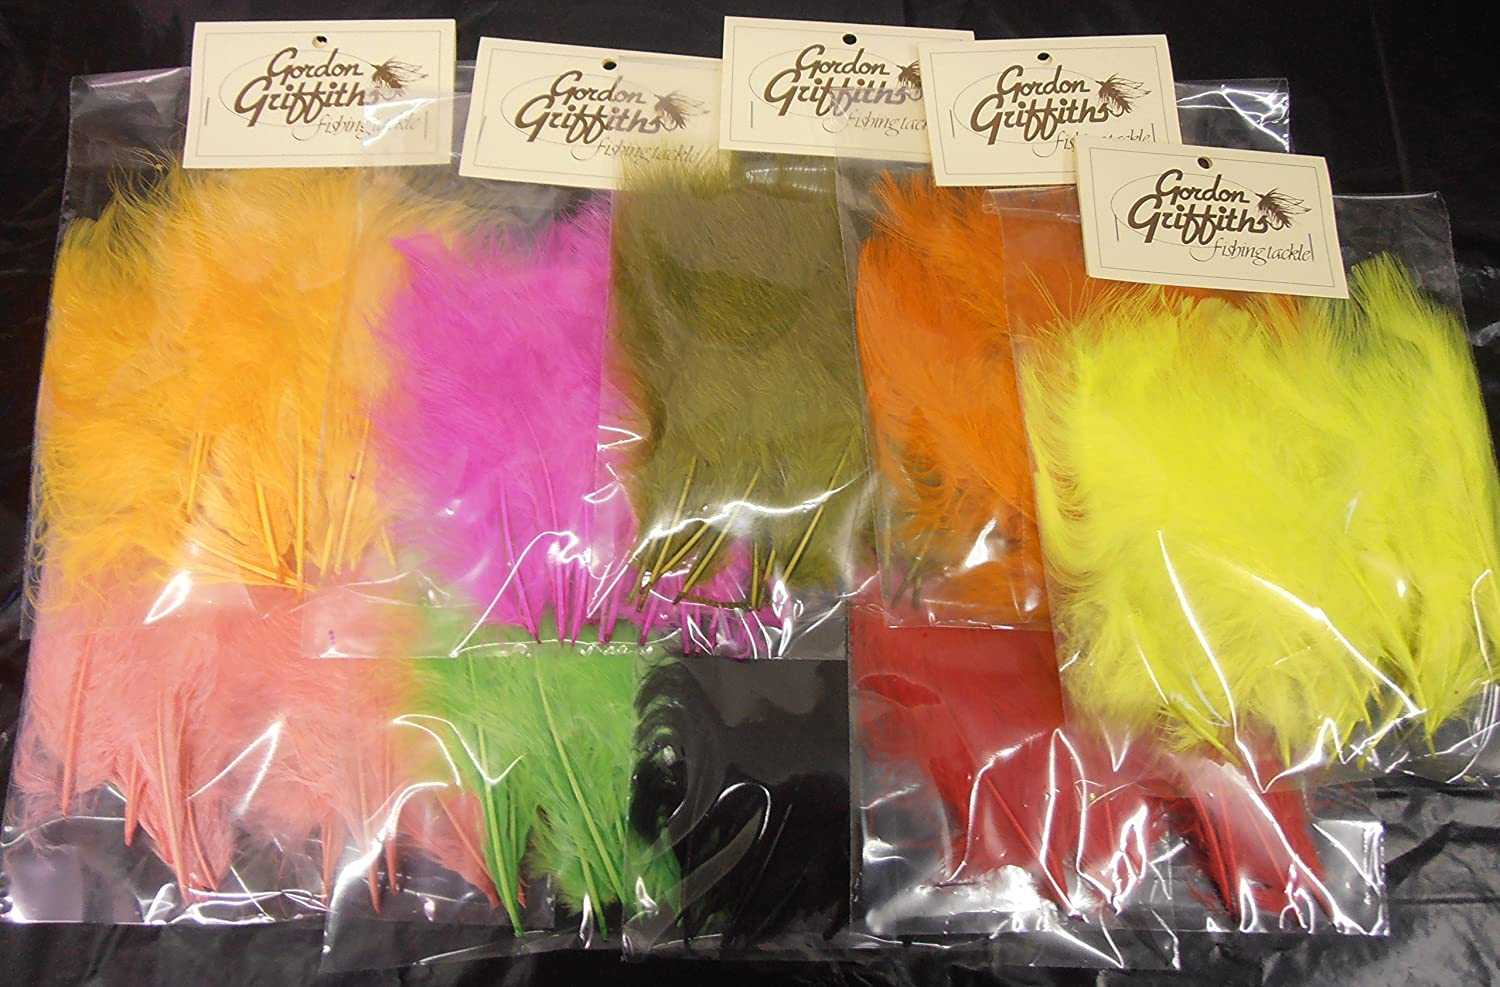 Gordon Griffiths Turkey Marabou Feathers 15 Selected Large Plumes Buy 1 get 1 free